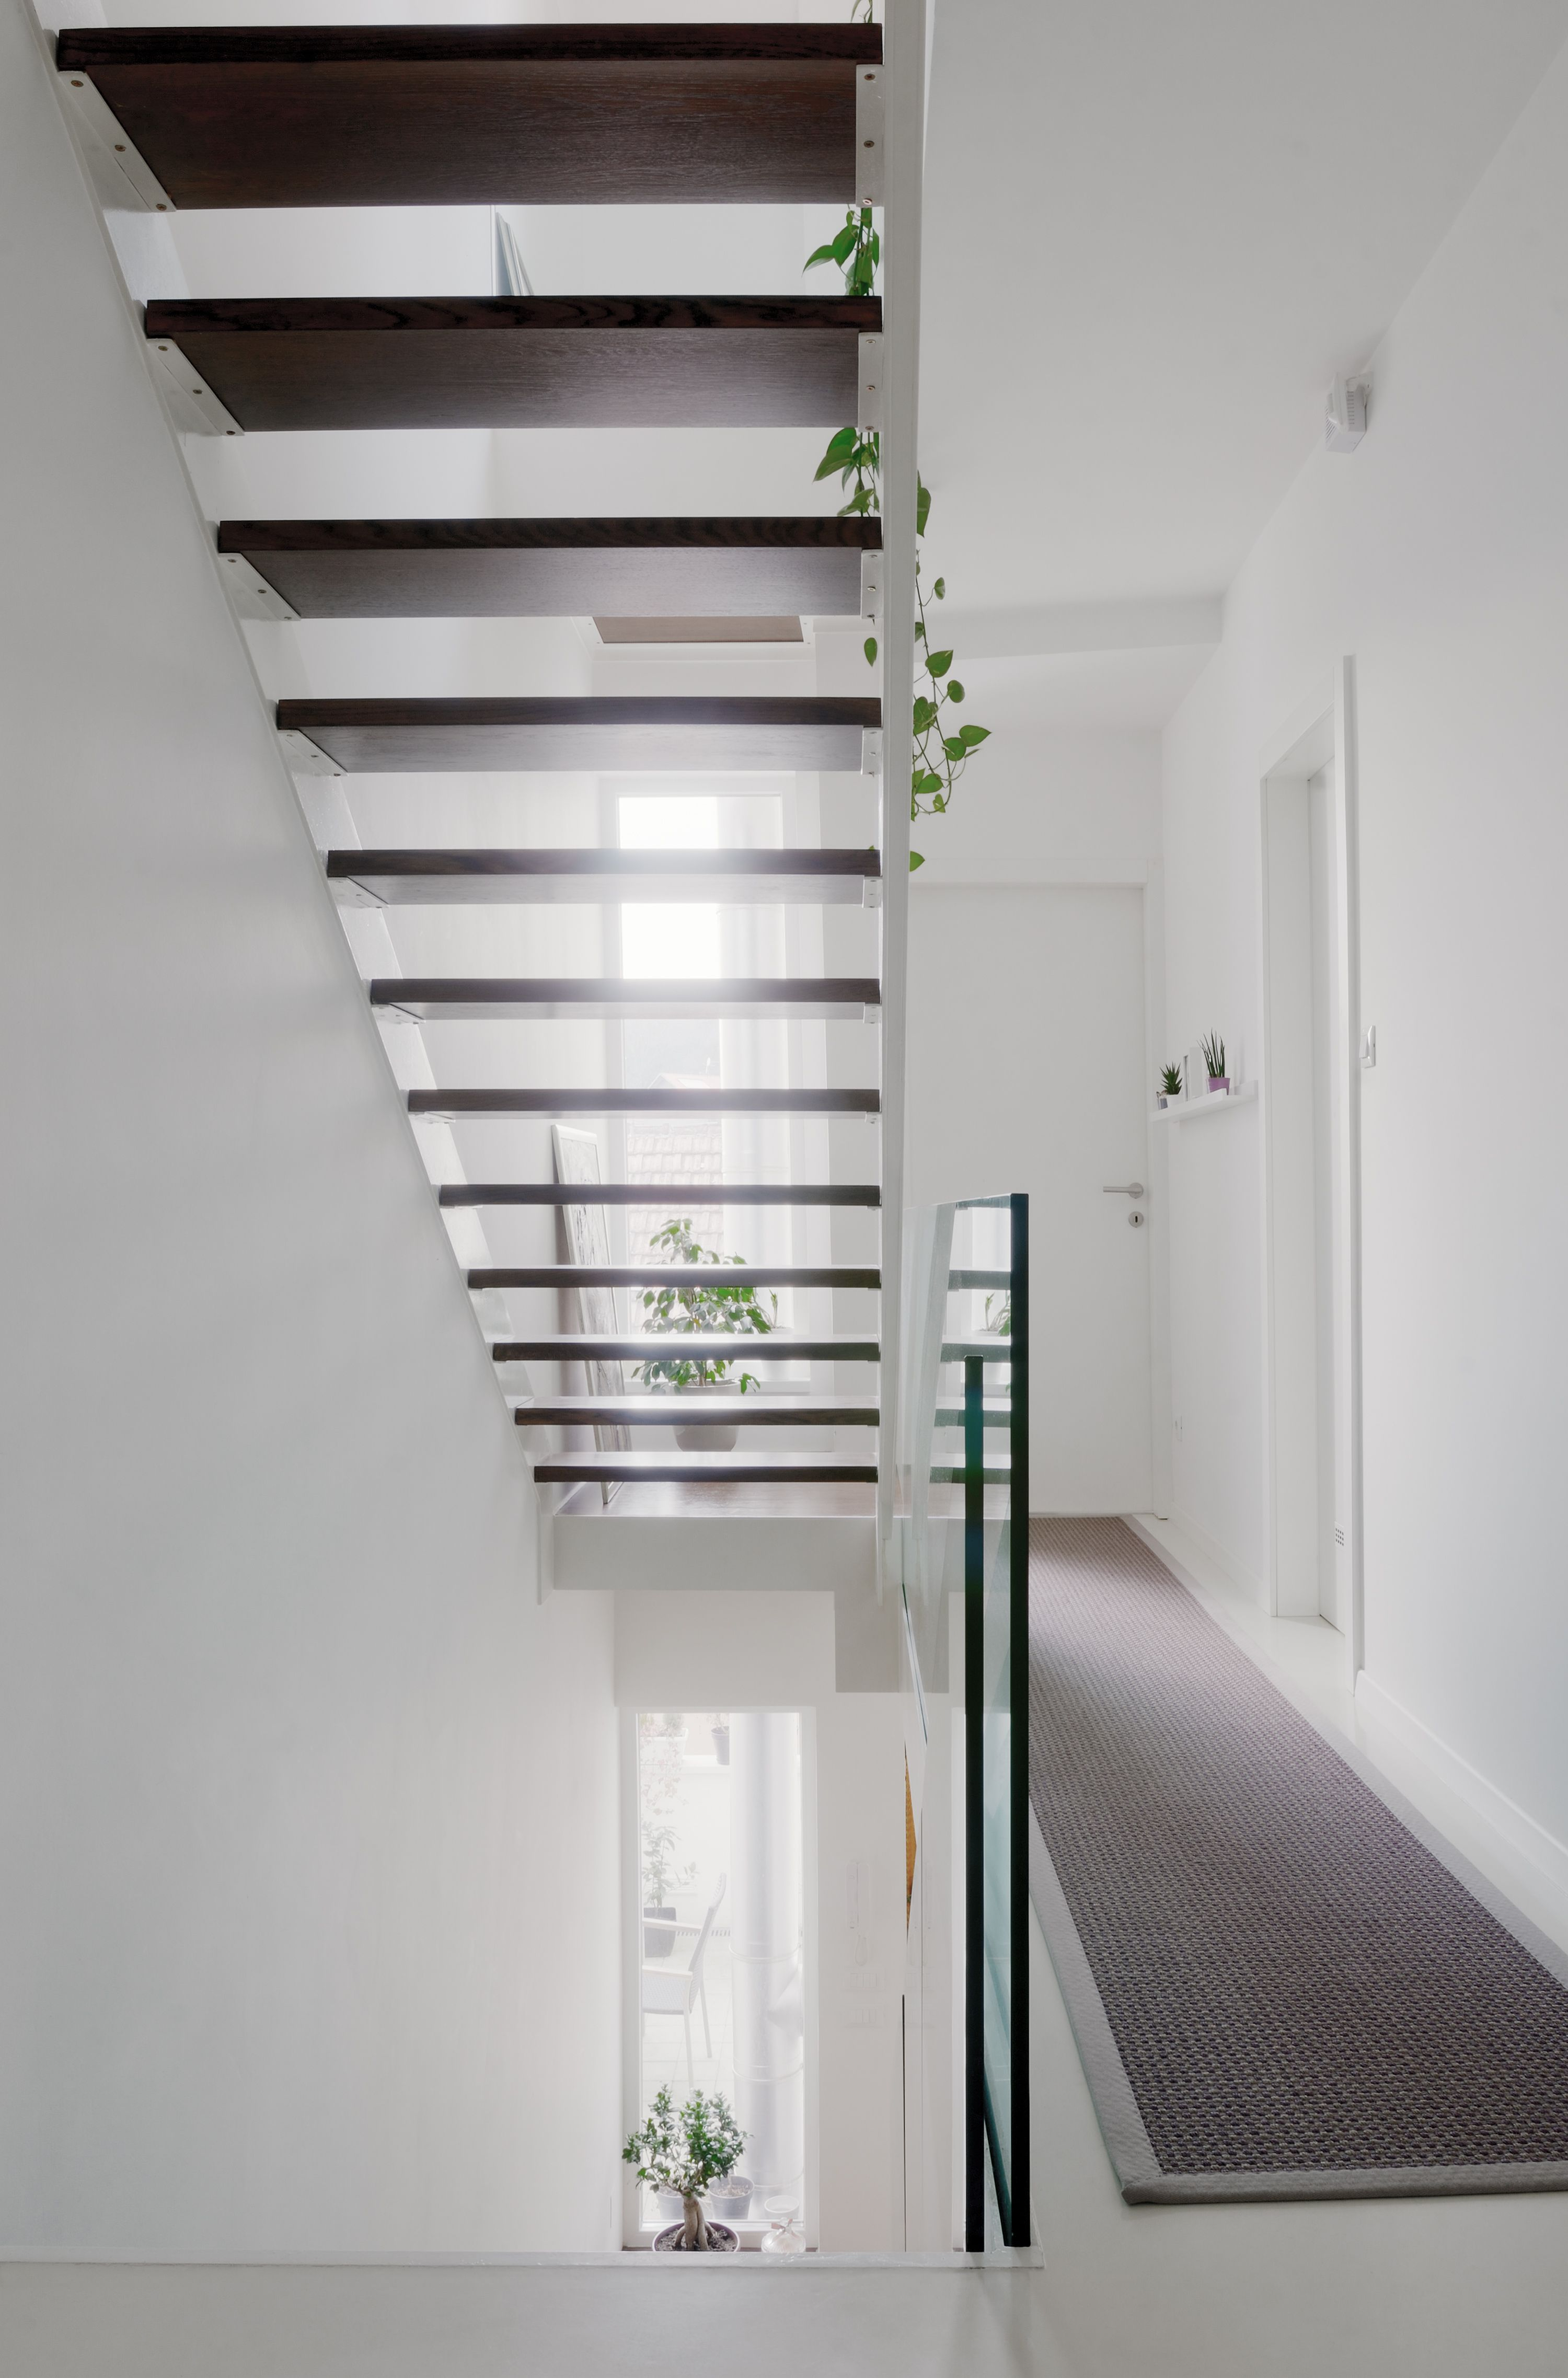 An example of using a glass balustrade in a bright